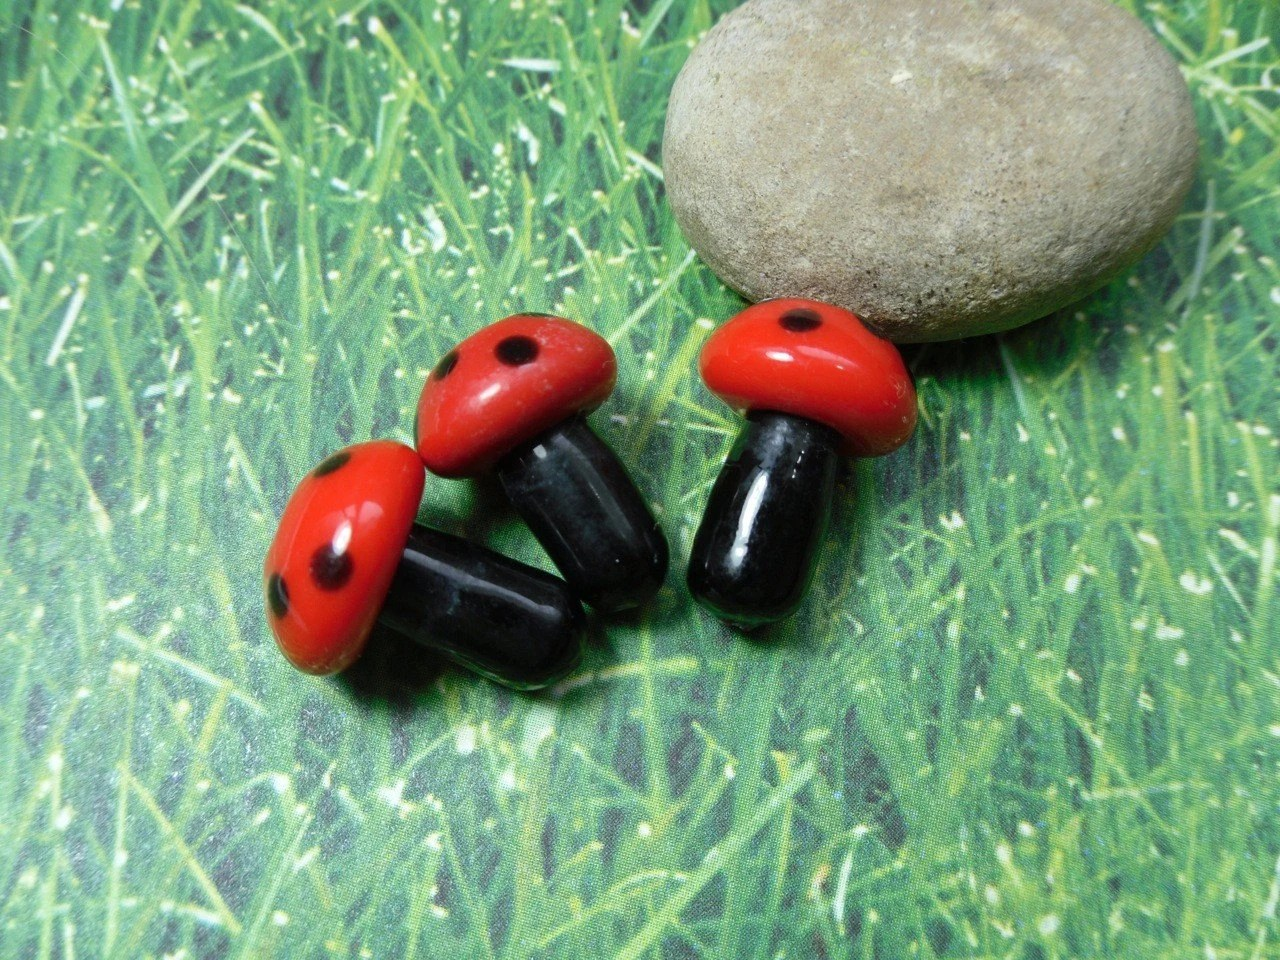 Wholesale Jewelry Findings Canada 50 Red And Black Polka Dot Mushroom Lampwork Glass Beads